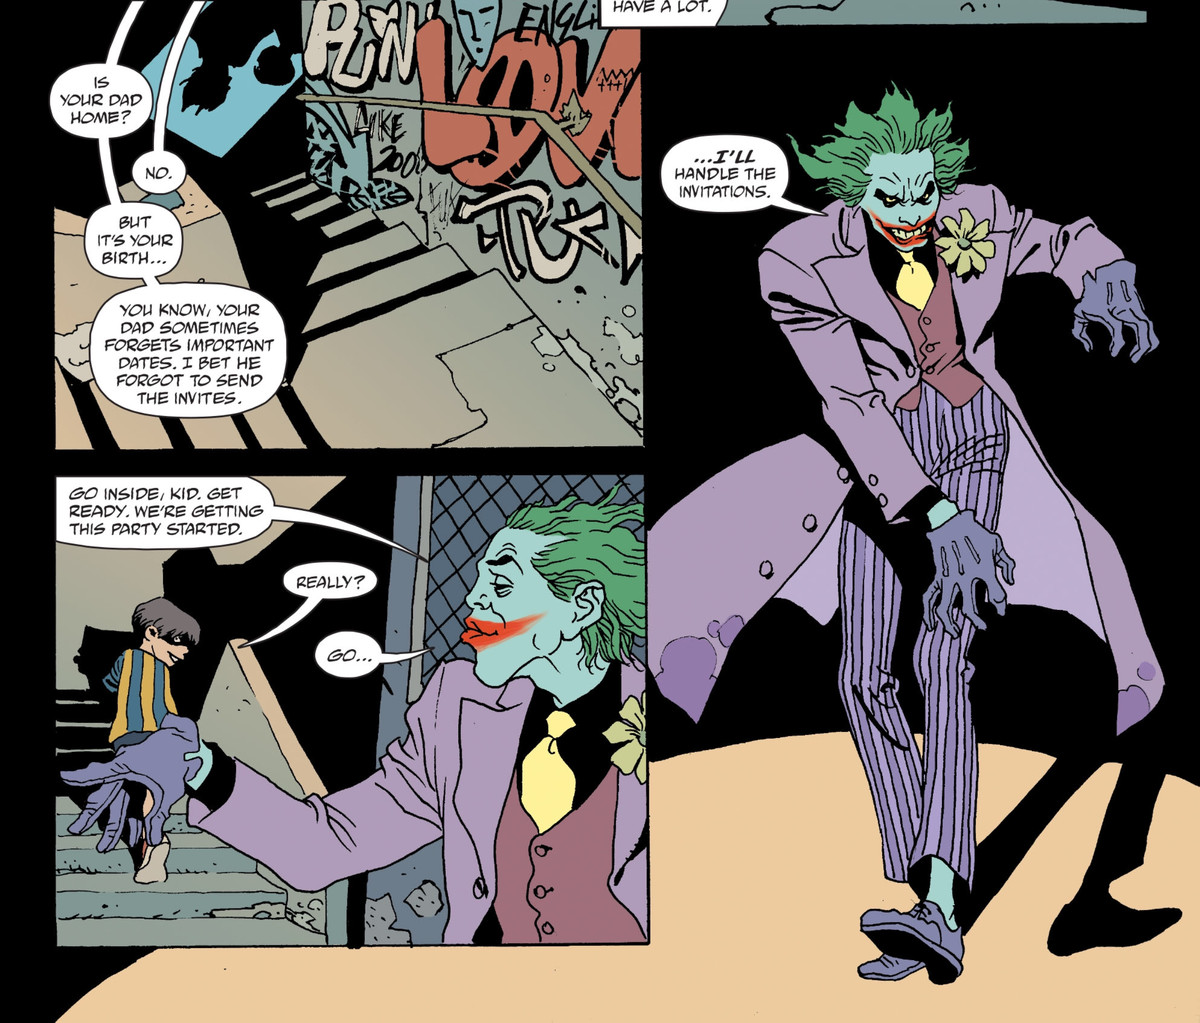 """The Joker decides to help a weird little kid with his birthday party, in the story """"Birthday Bugs"""" in The Joker 80th Anniversary 100-Page Super Spectacular, DC Comics (2020)."""